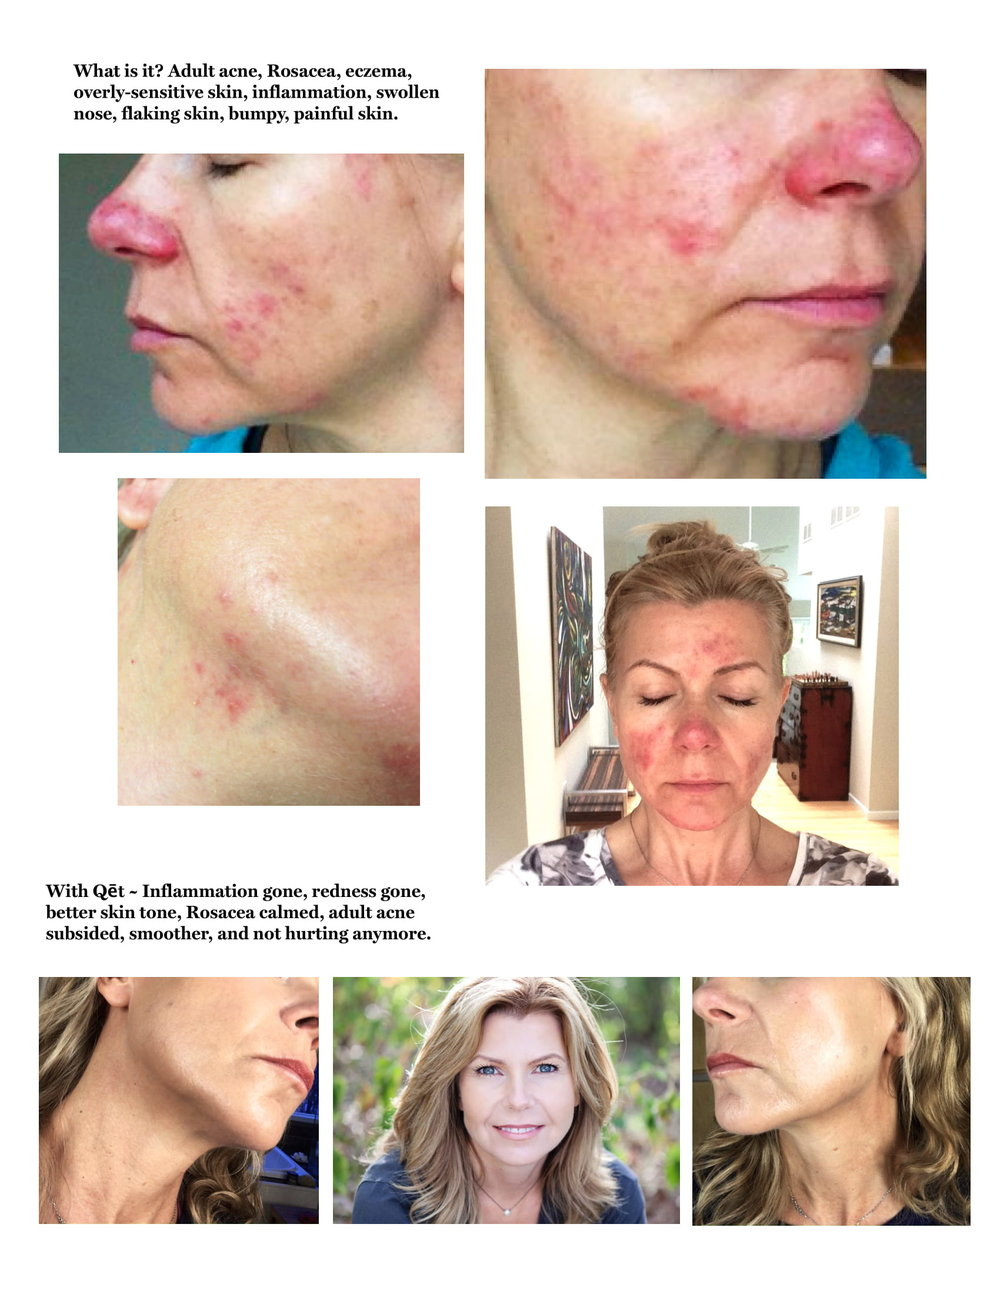 Qet-Botanicals-Lisa-Brill-Before-and-After-Rosacea-Adult-Acne (1)-1.jpg